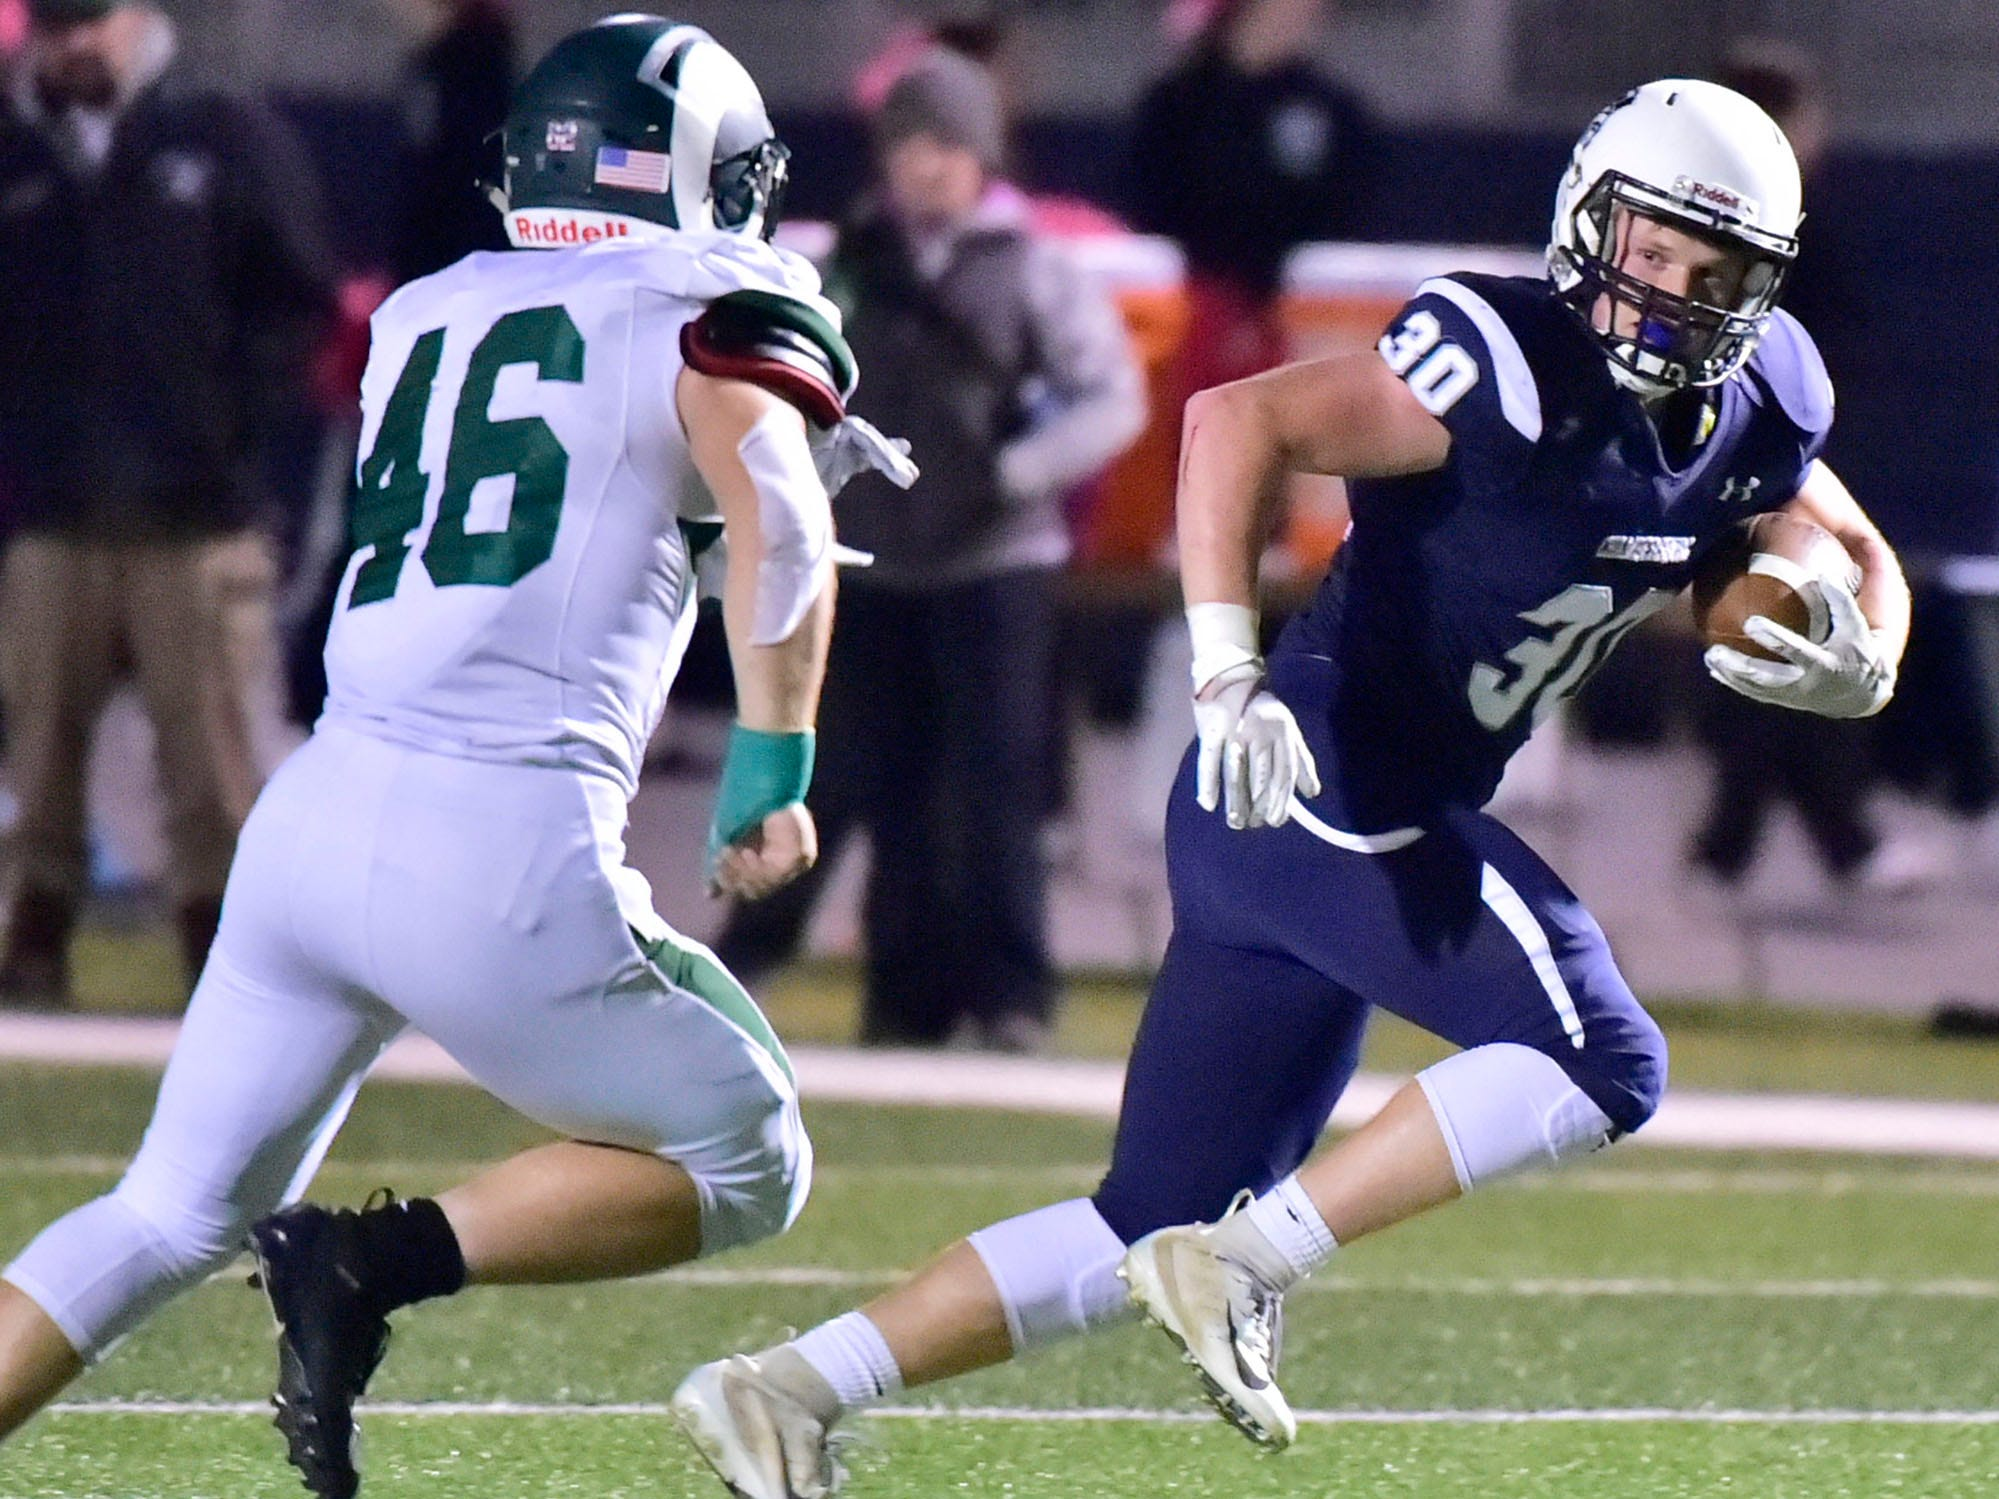 Chambersburg's Tanner Hunt (30) runs the ball for the Trojans. Chambersburg lost to Central Dauphin 35-14 in PIAA football on Friday, Oct. 19, 2018.